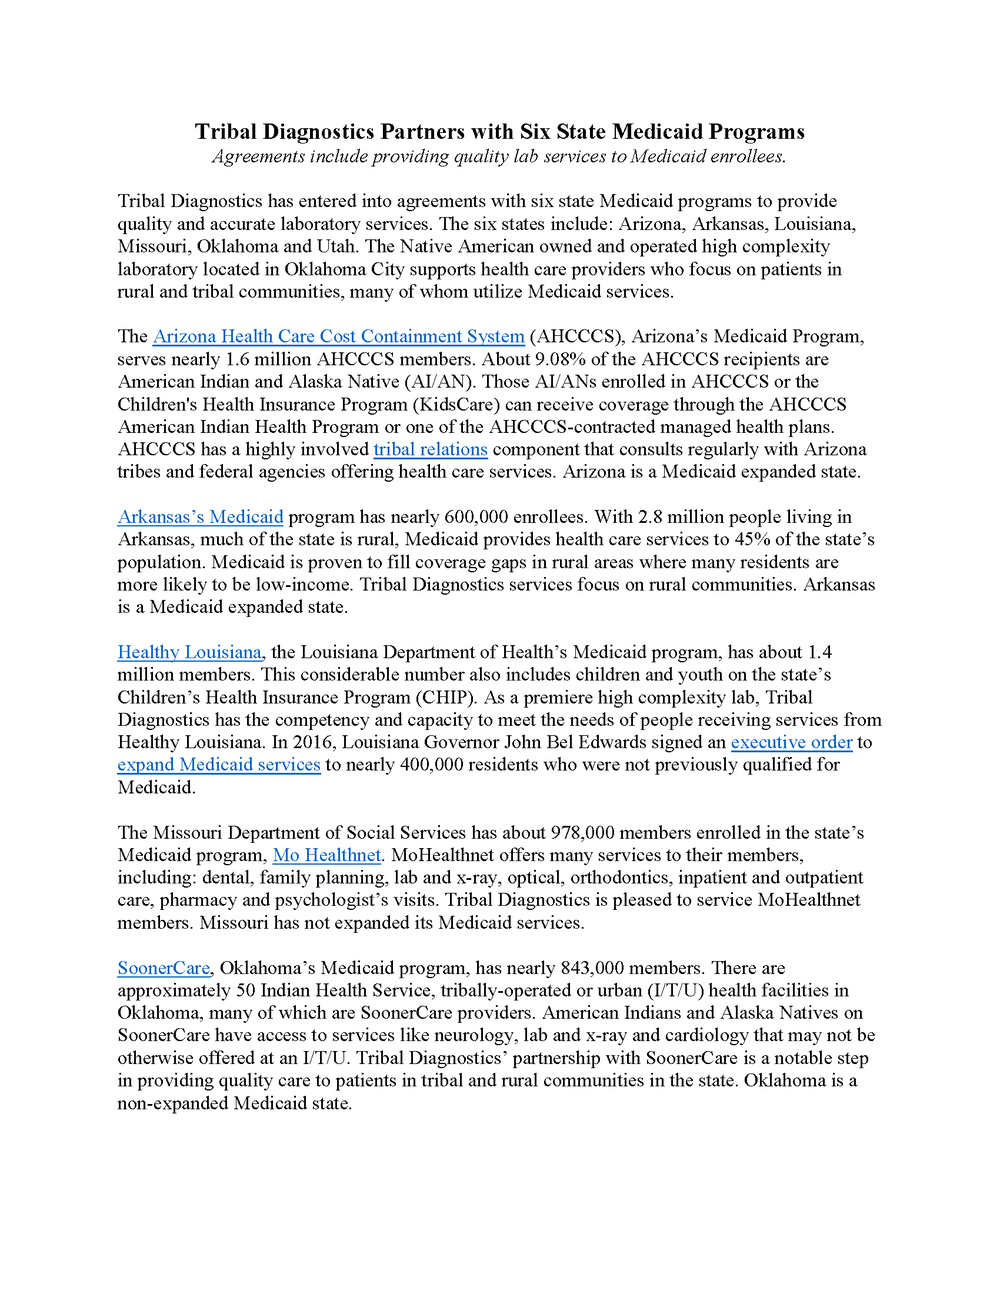 FINAL-TO-POST_Medicaid-Agreements_09-012-17_Page_1.png